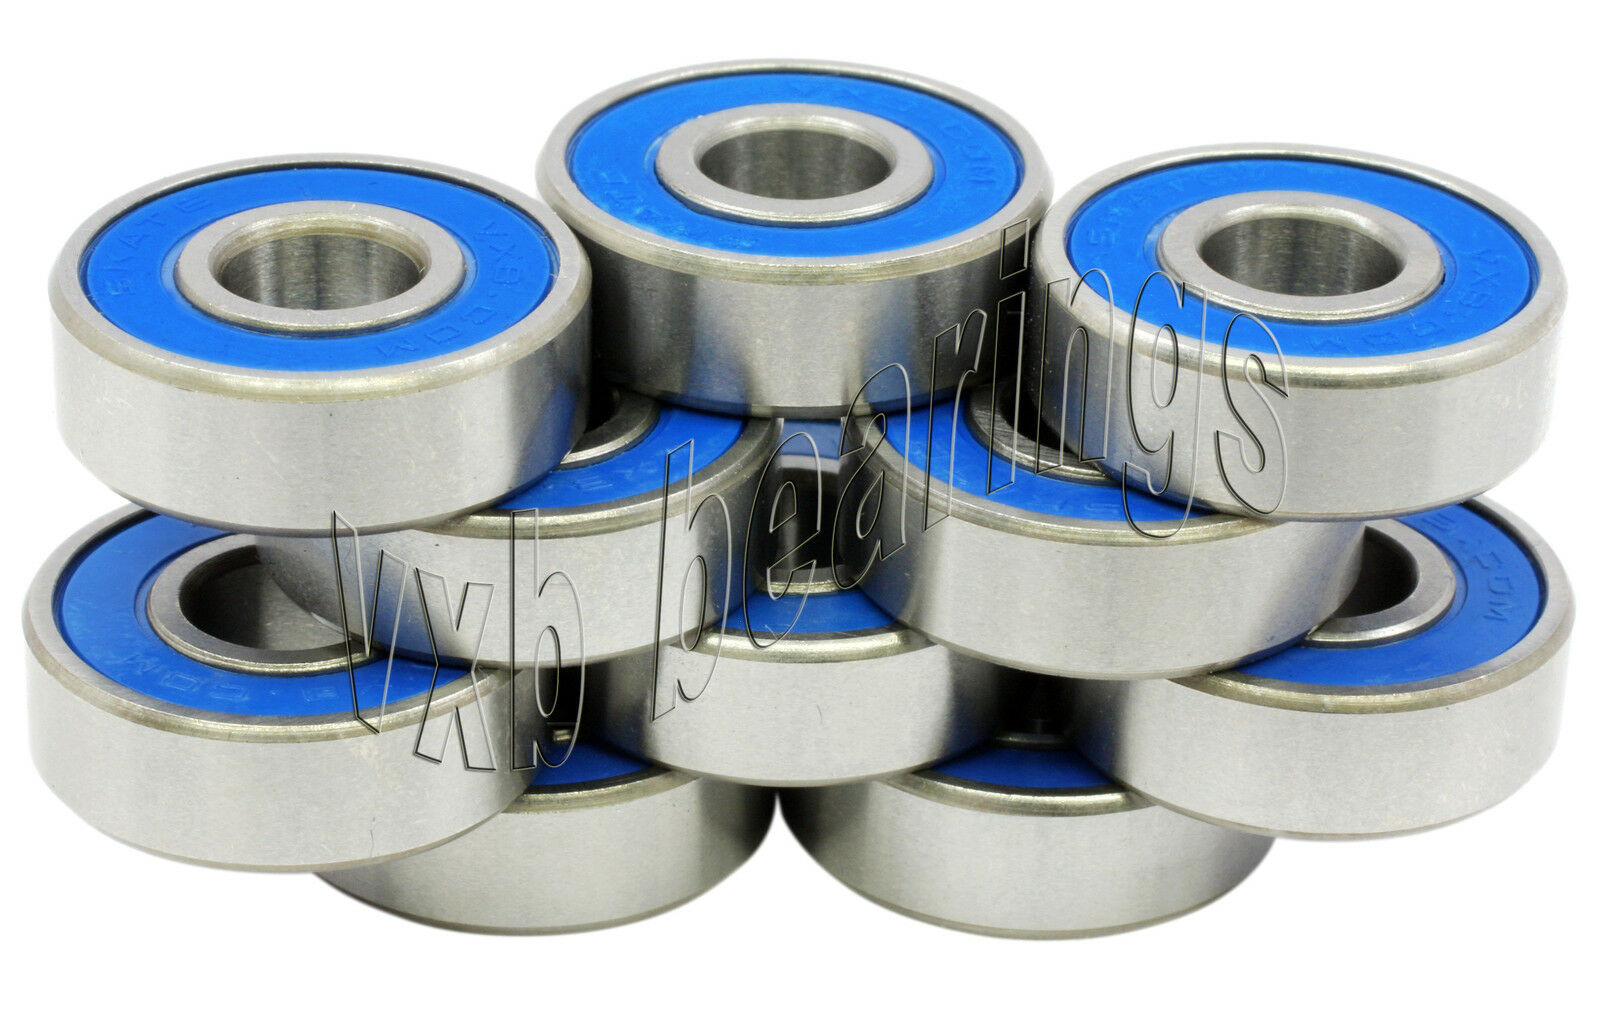 "LOT OF 10 R168-2RS 1/4""x 3/8""x 1/8"" R168RS inch Miniature ..."